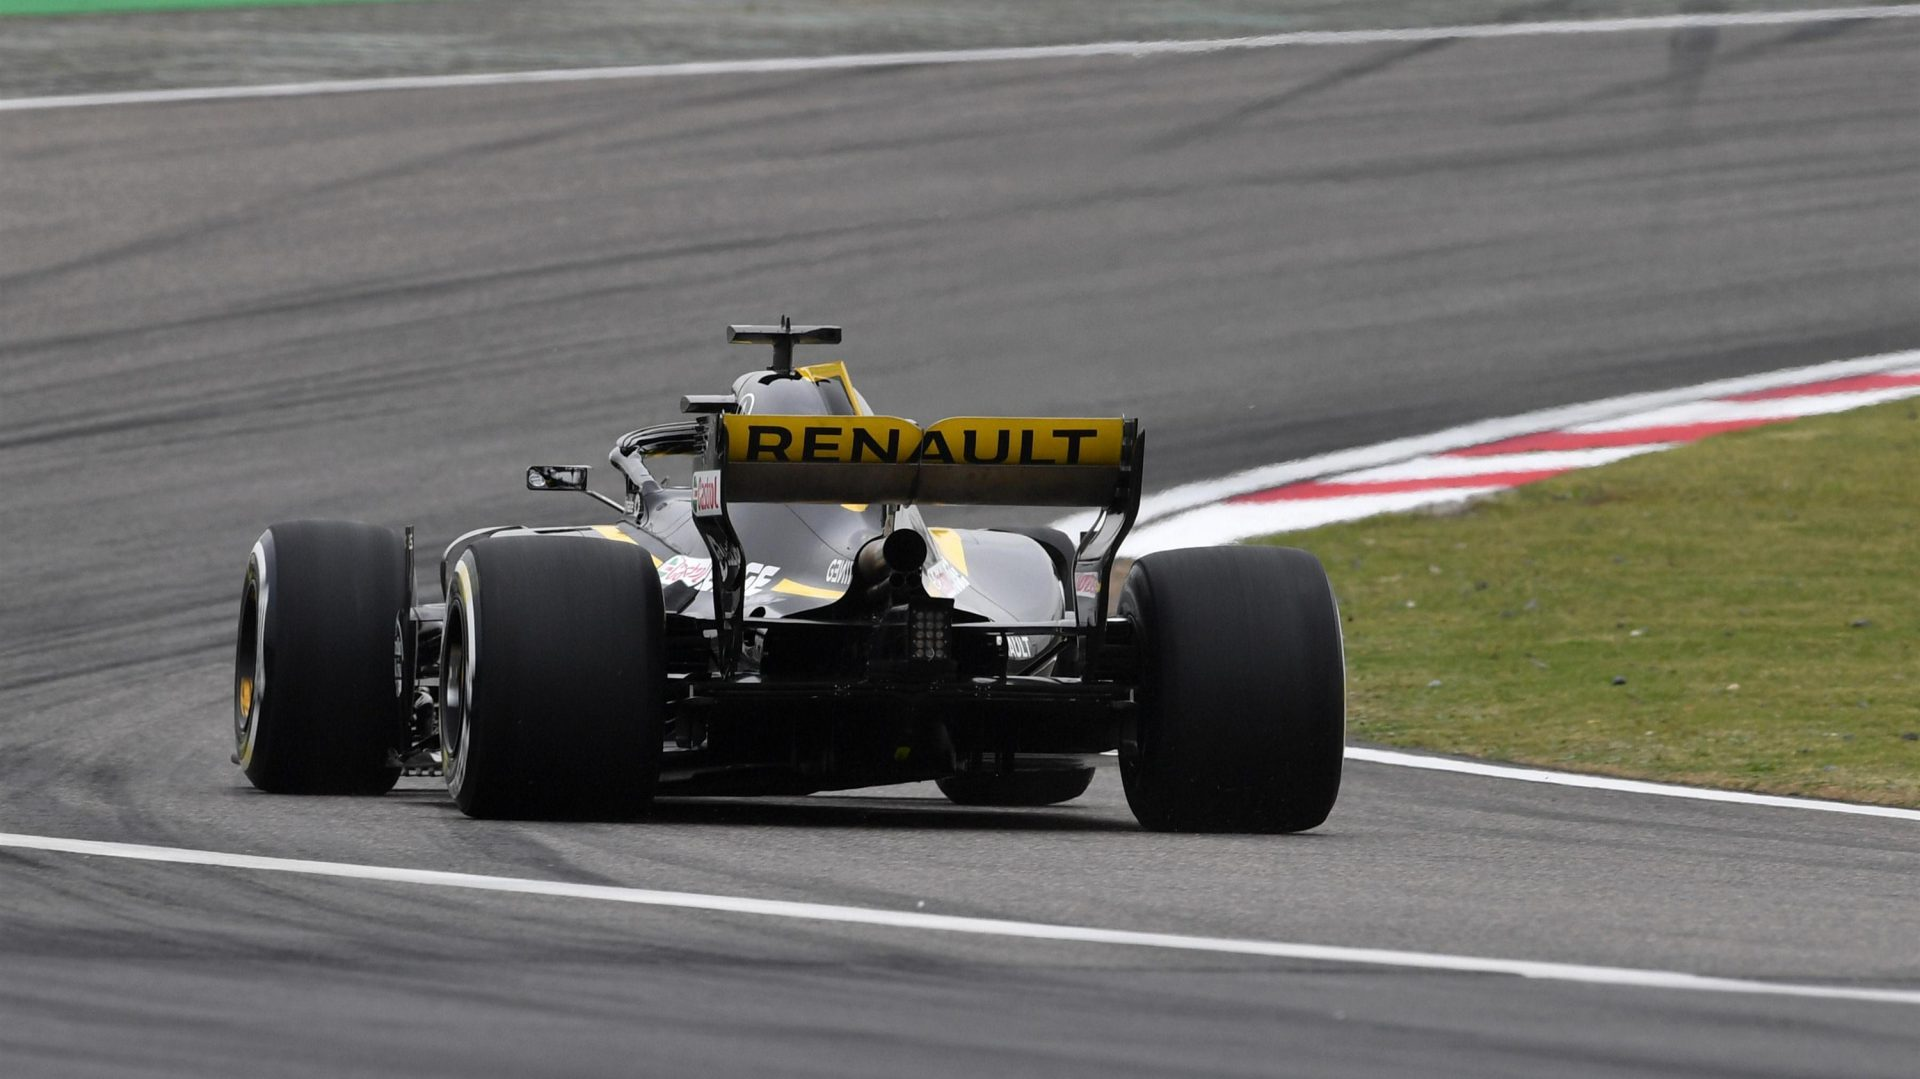 https://www.formula1.com/content/fom-website/en/latest/features/2018/4/gallery--the-best-images-from-friday-in-china/_jcr_content/featureContent/manual_gallery/image5.img.1920.medium.jpg/1523585316321.jpg